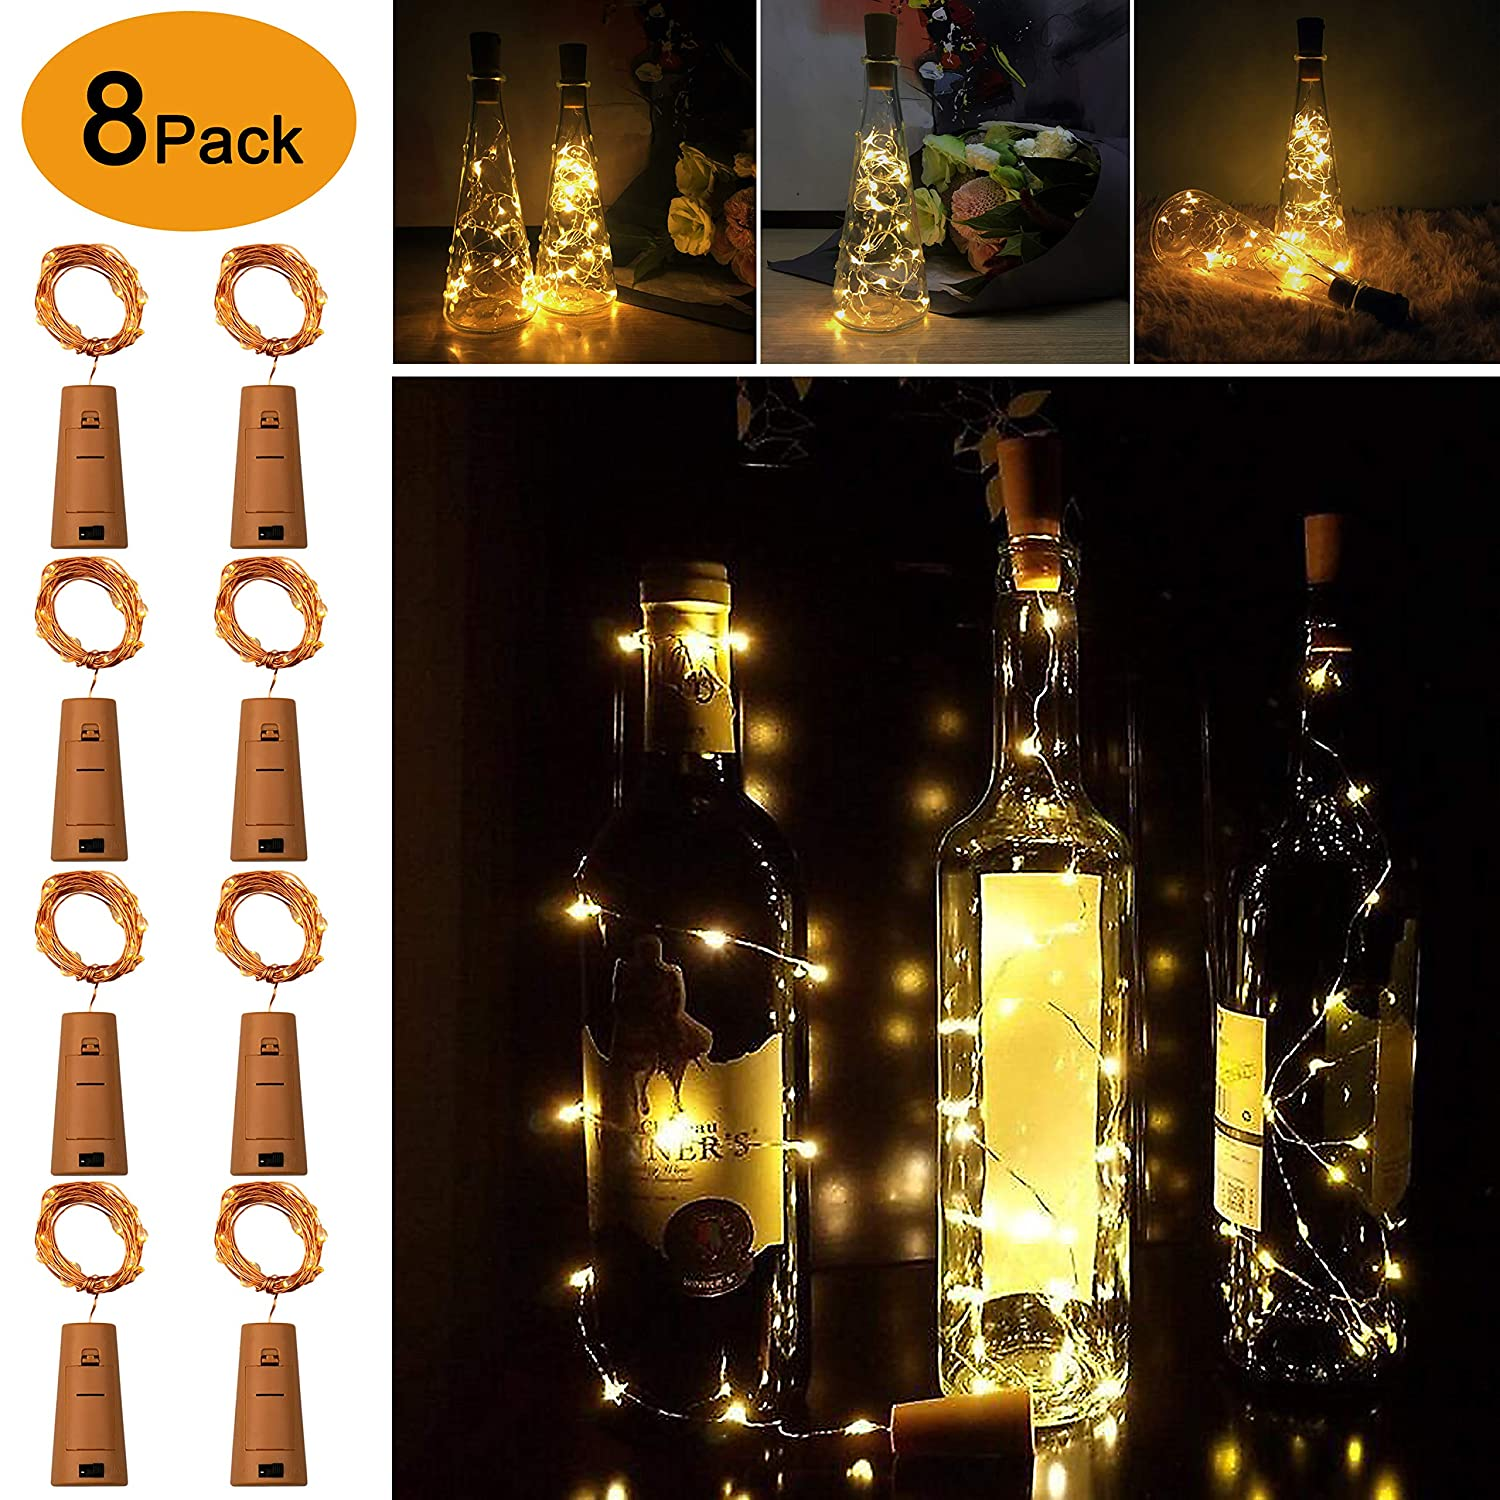 LED Bottle Cork Lights, Omew Wine Bottle Lights 2M/20LEDs Copper Wire String Lights for Bottle DIY, Parties, Wedding, Holiday Decor (8 Packs 2m/7.2ft Warm White)